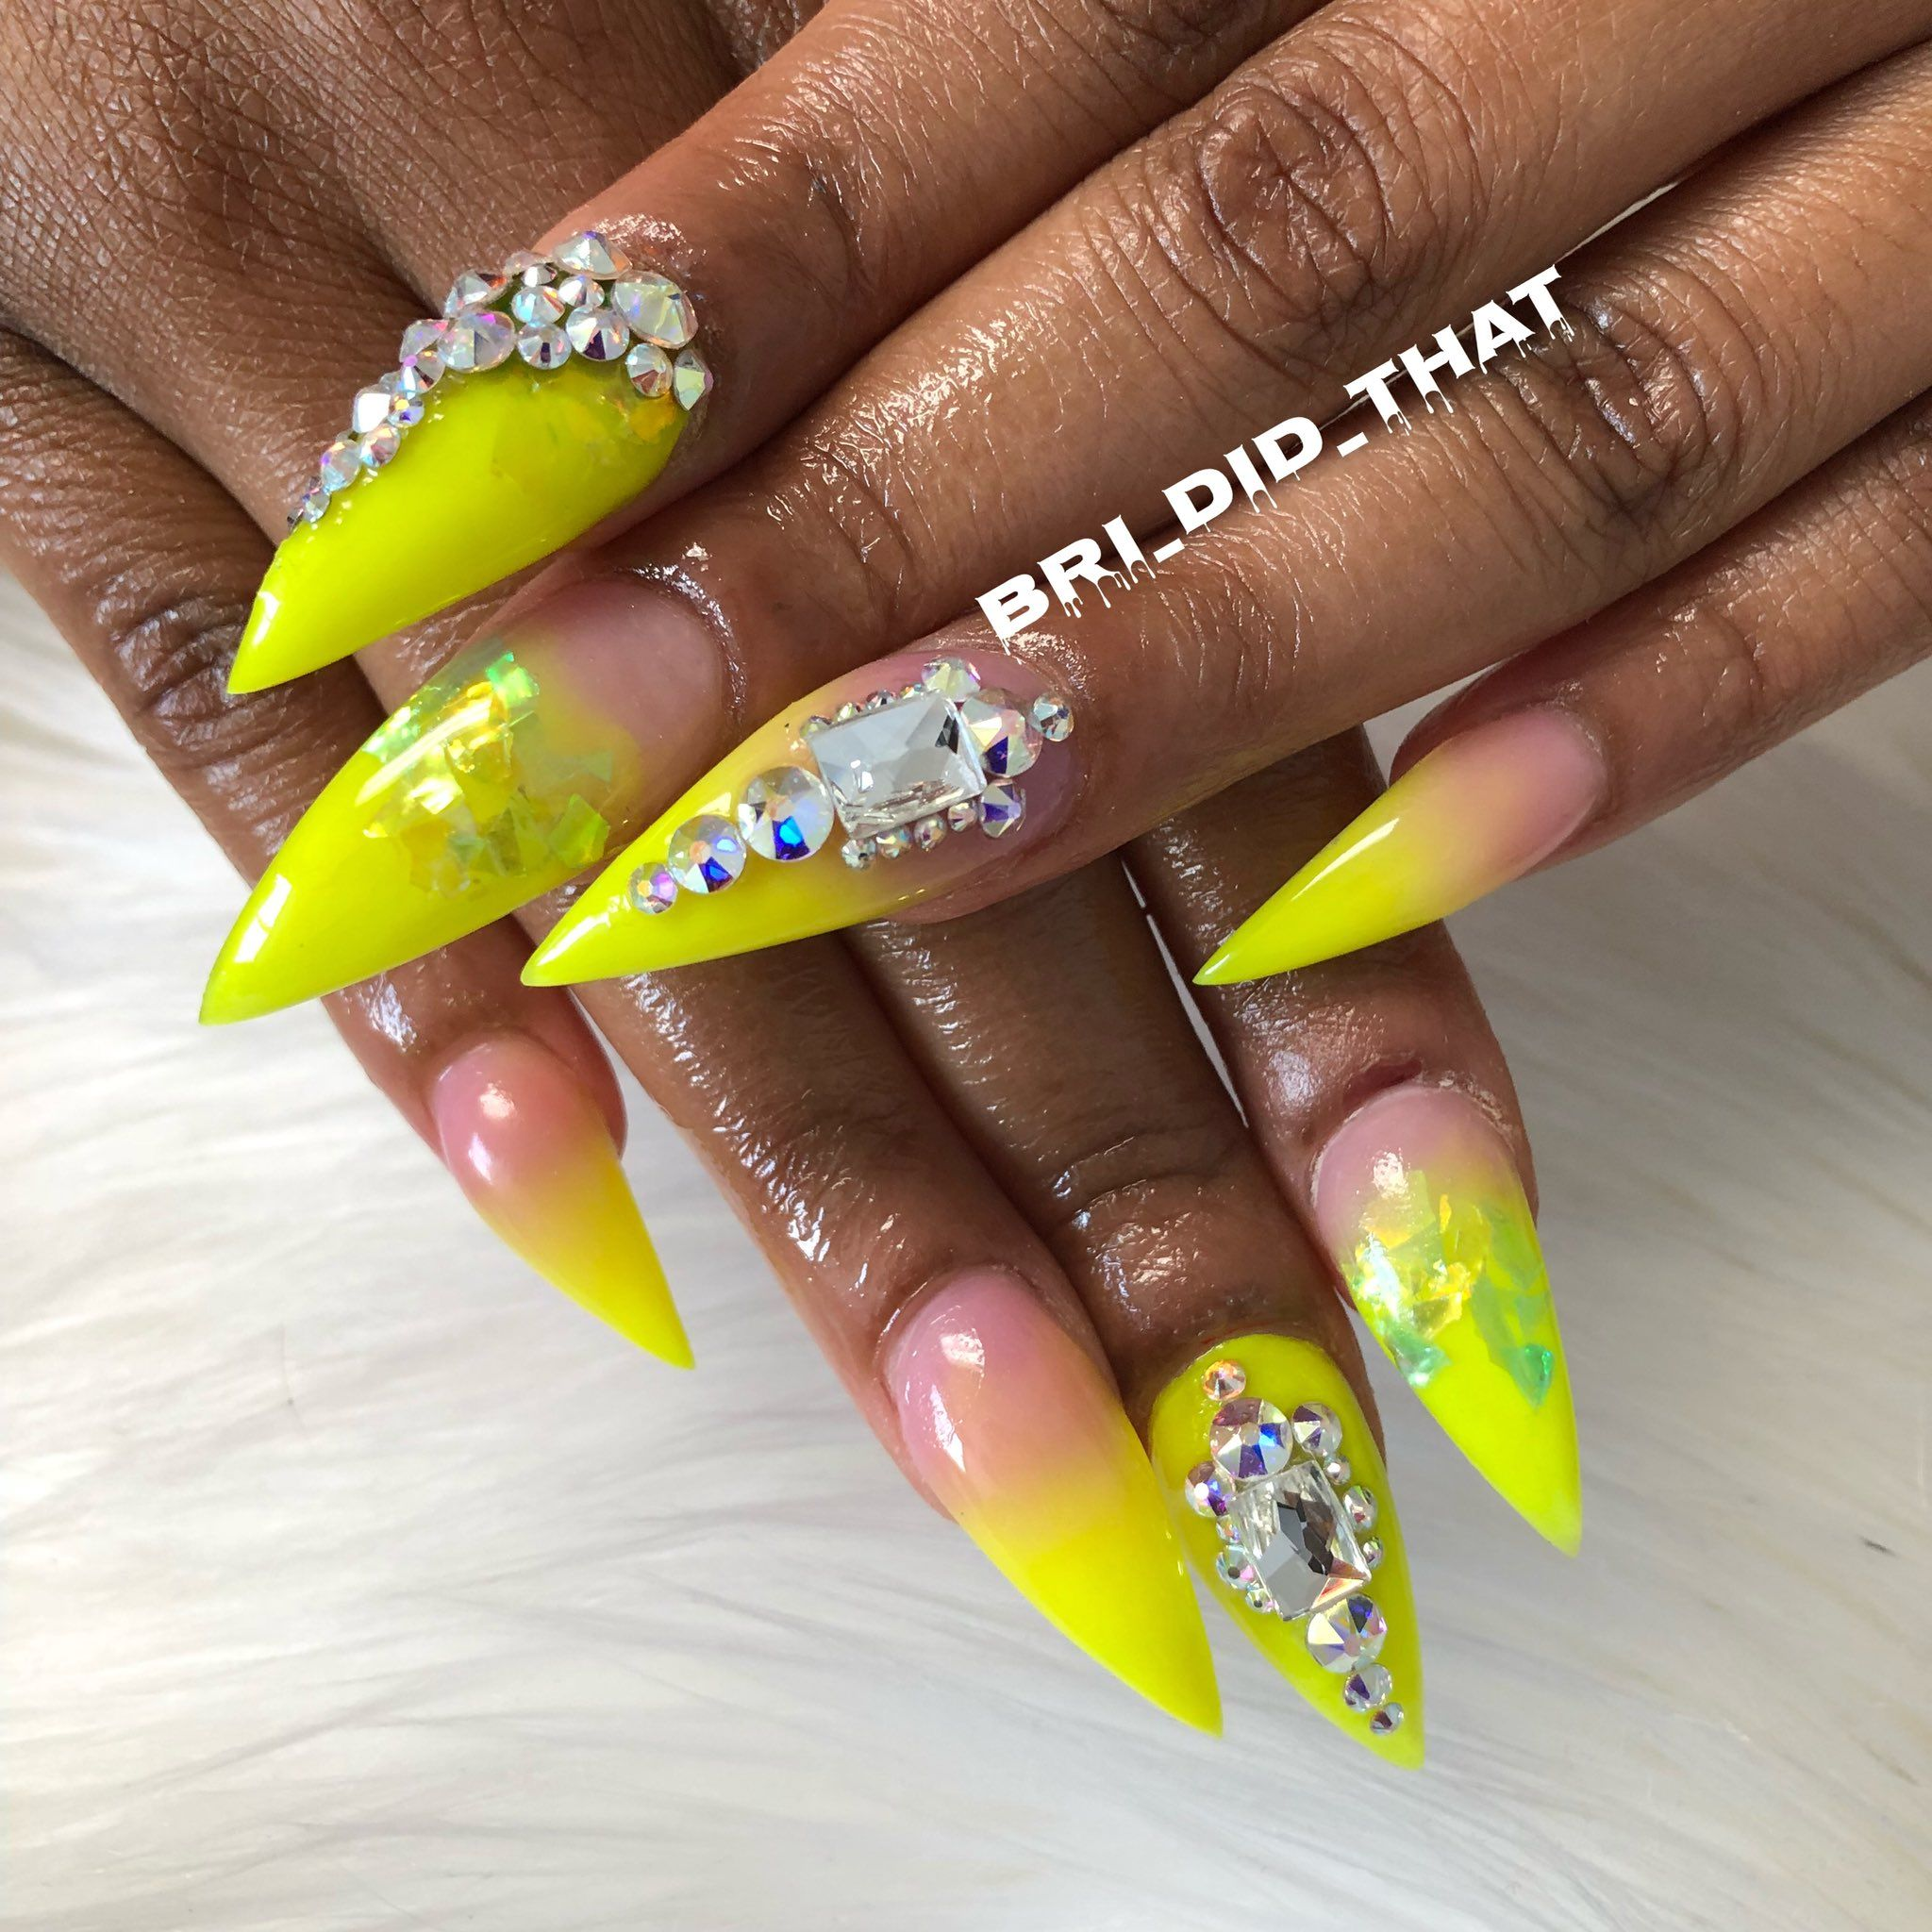 Yellow Nail Polish Toenails: Rhinestone Nails, Nail Designs, Nail Art